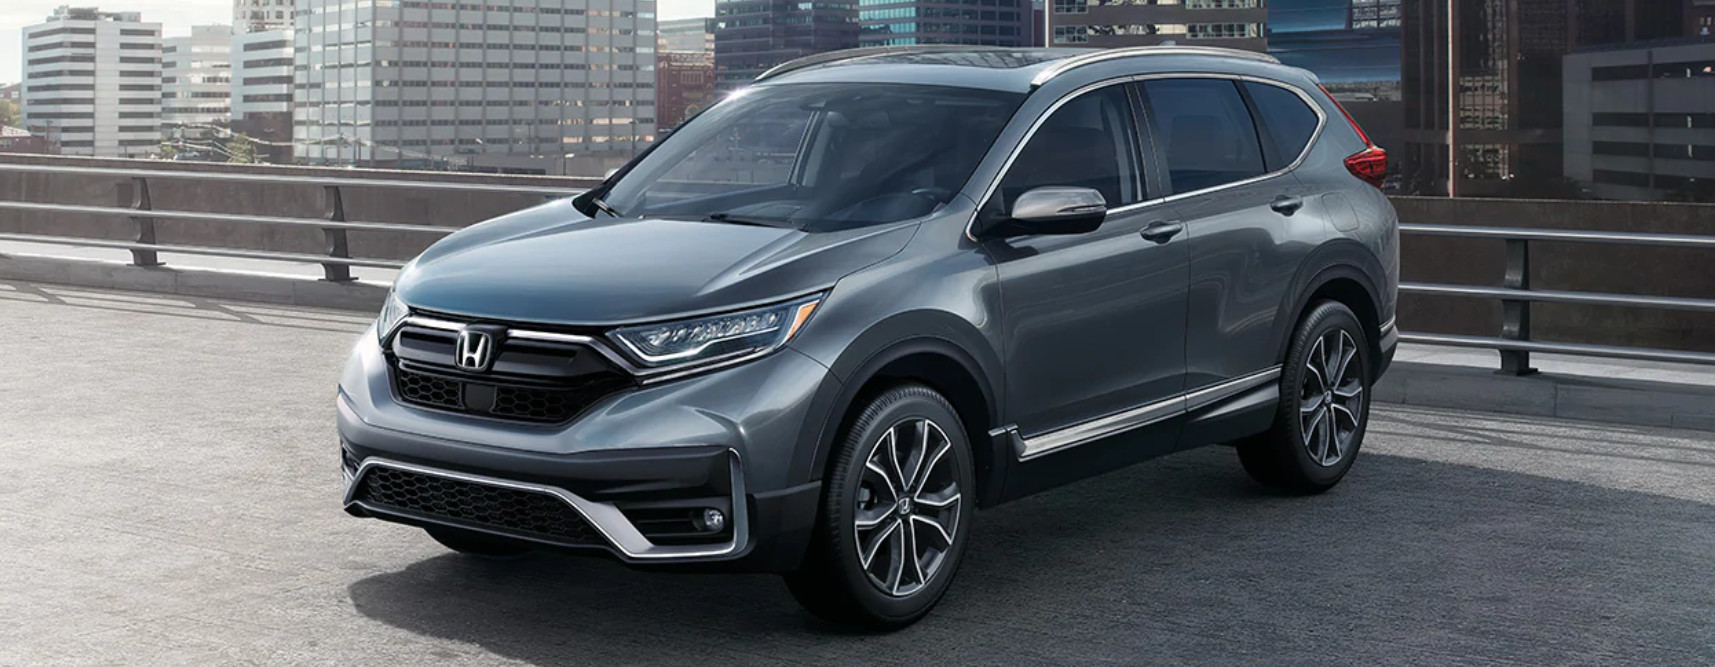 2020 Honda CR-V for Sale near Gaithersburg, MD